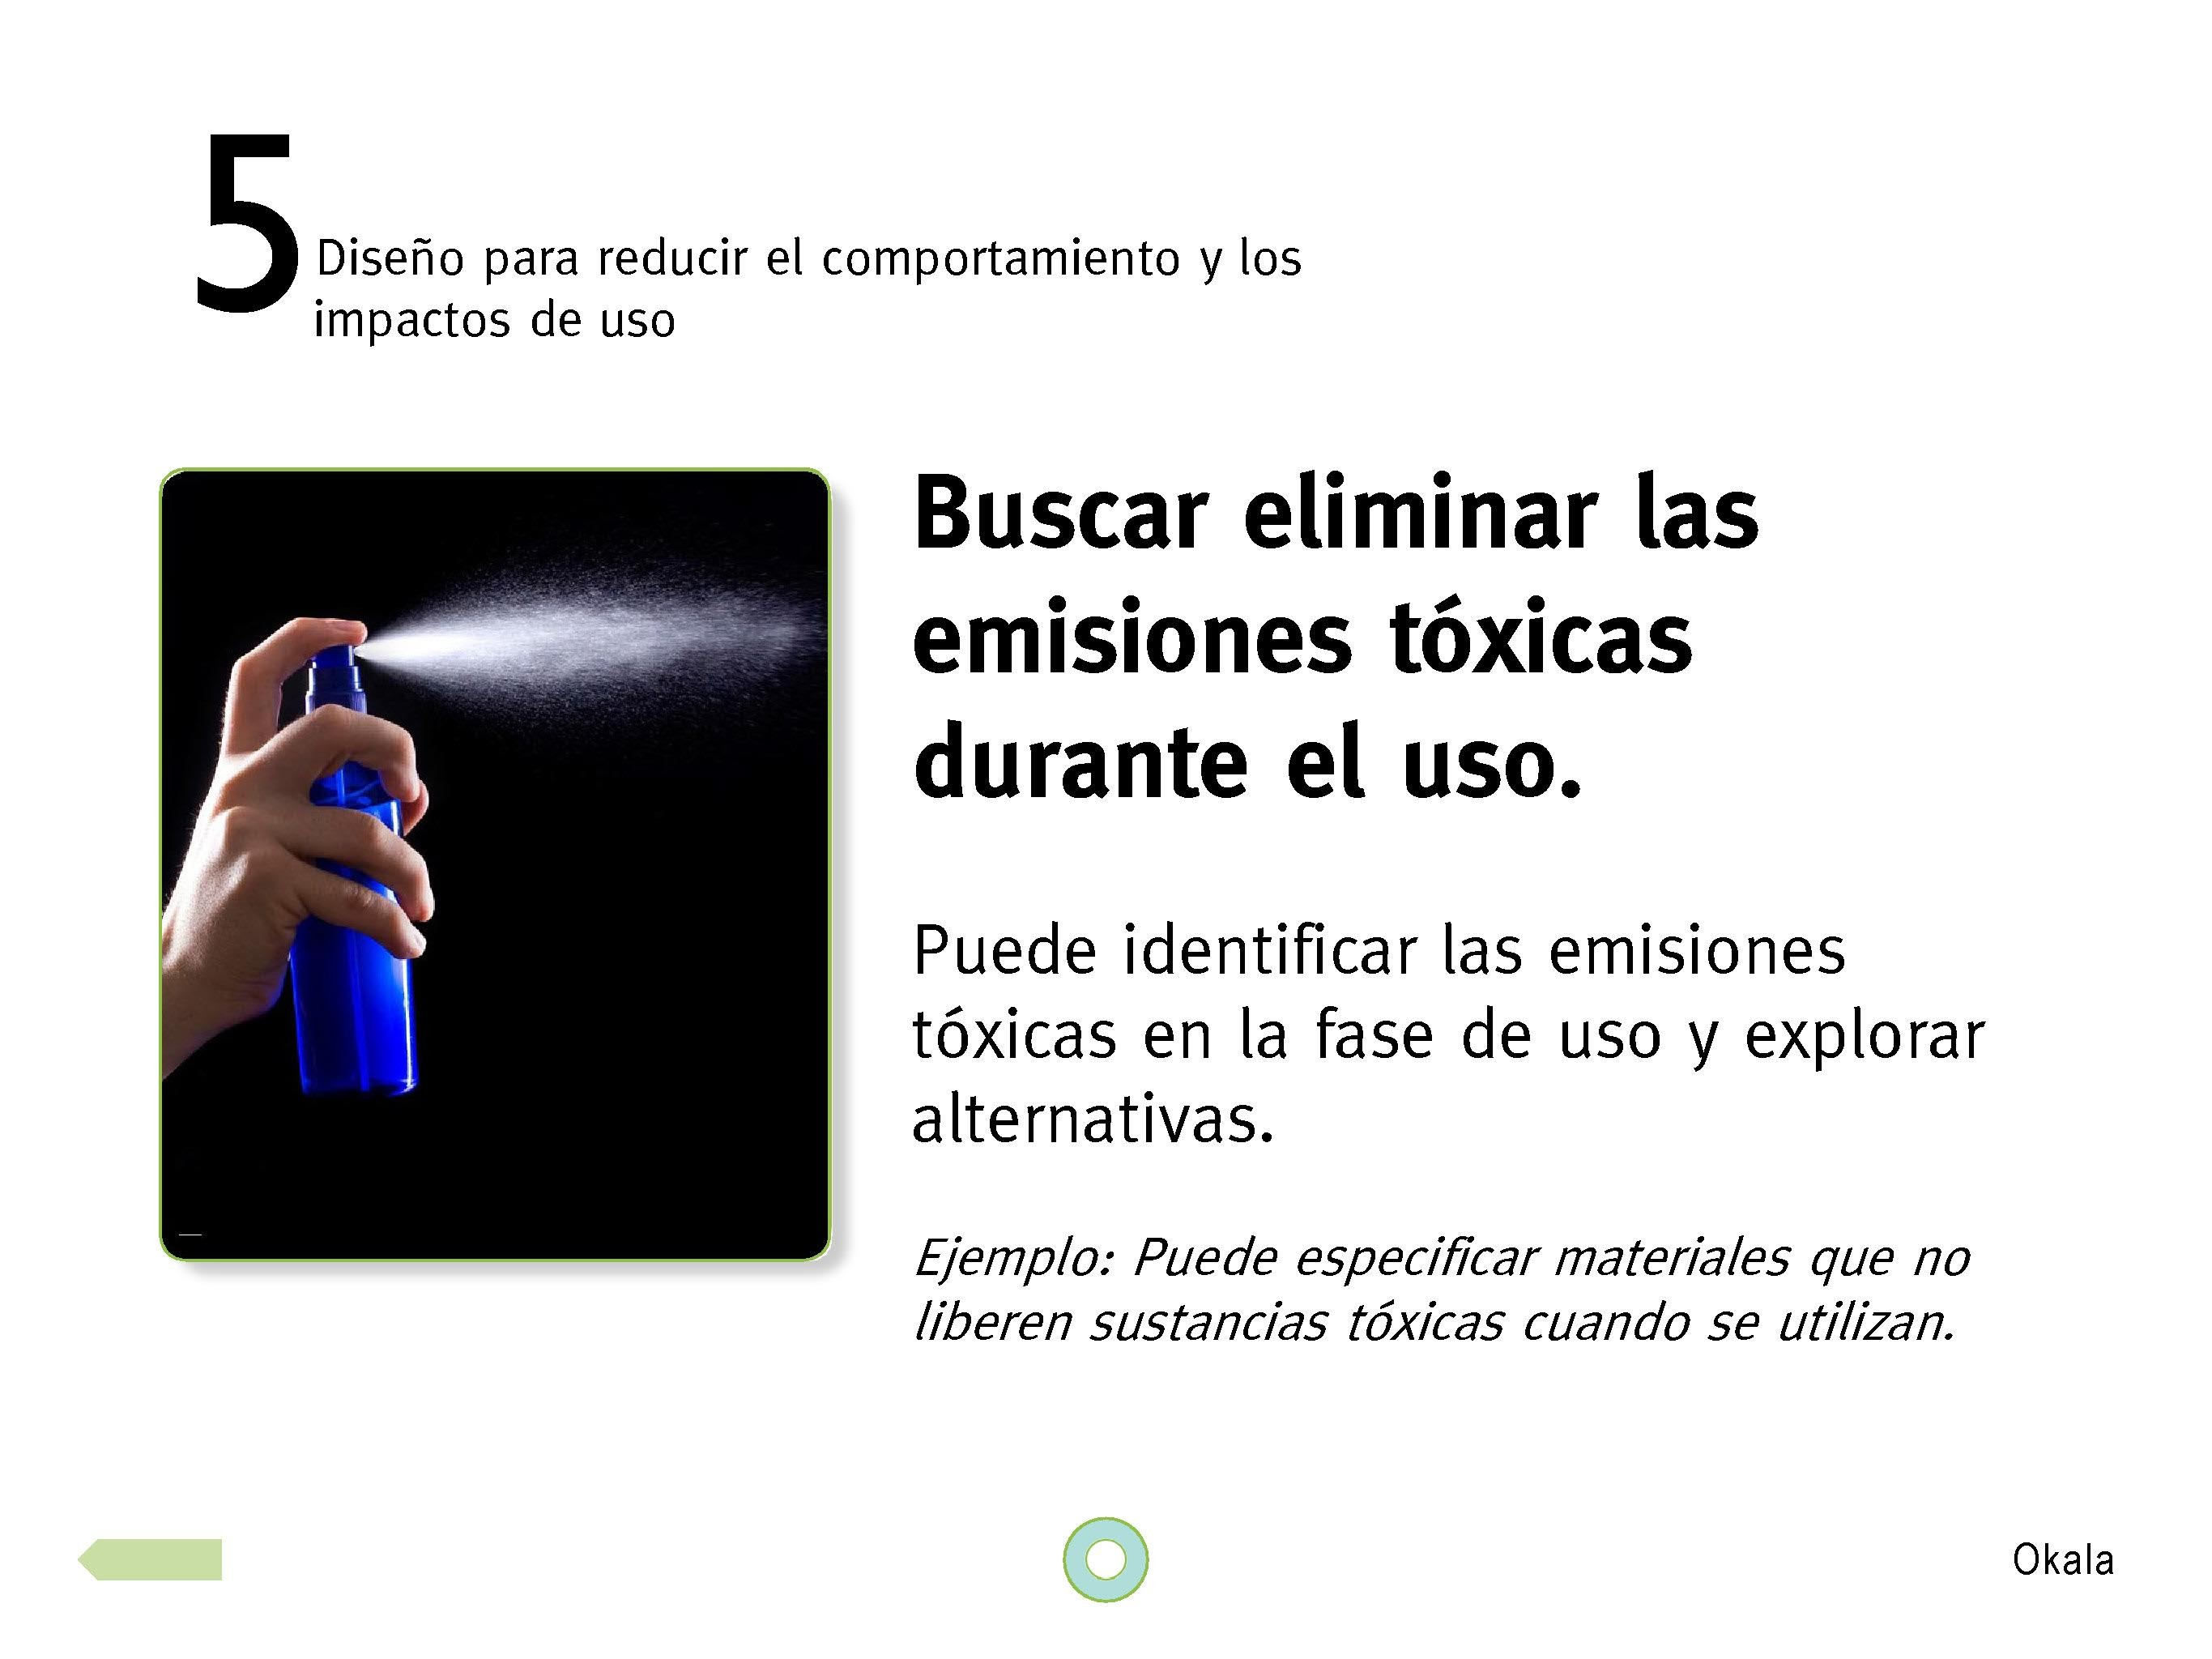 okala-ecodesign-strategy-guide-2012-spanish.new_page_31-1